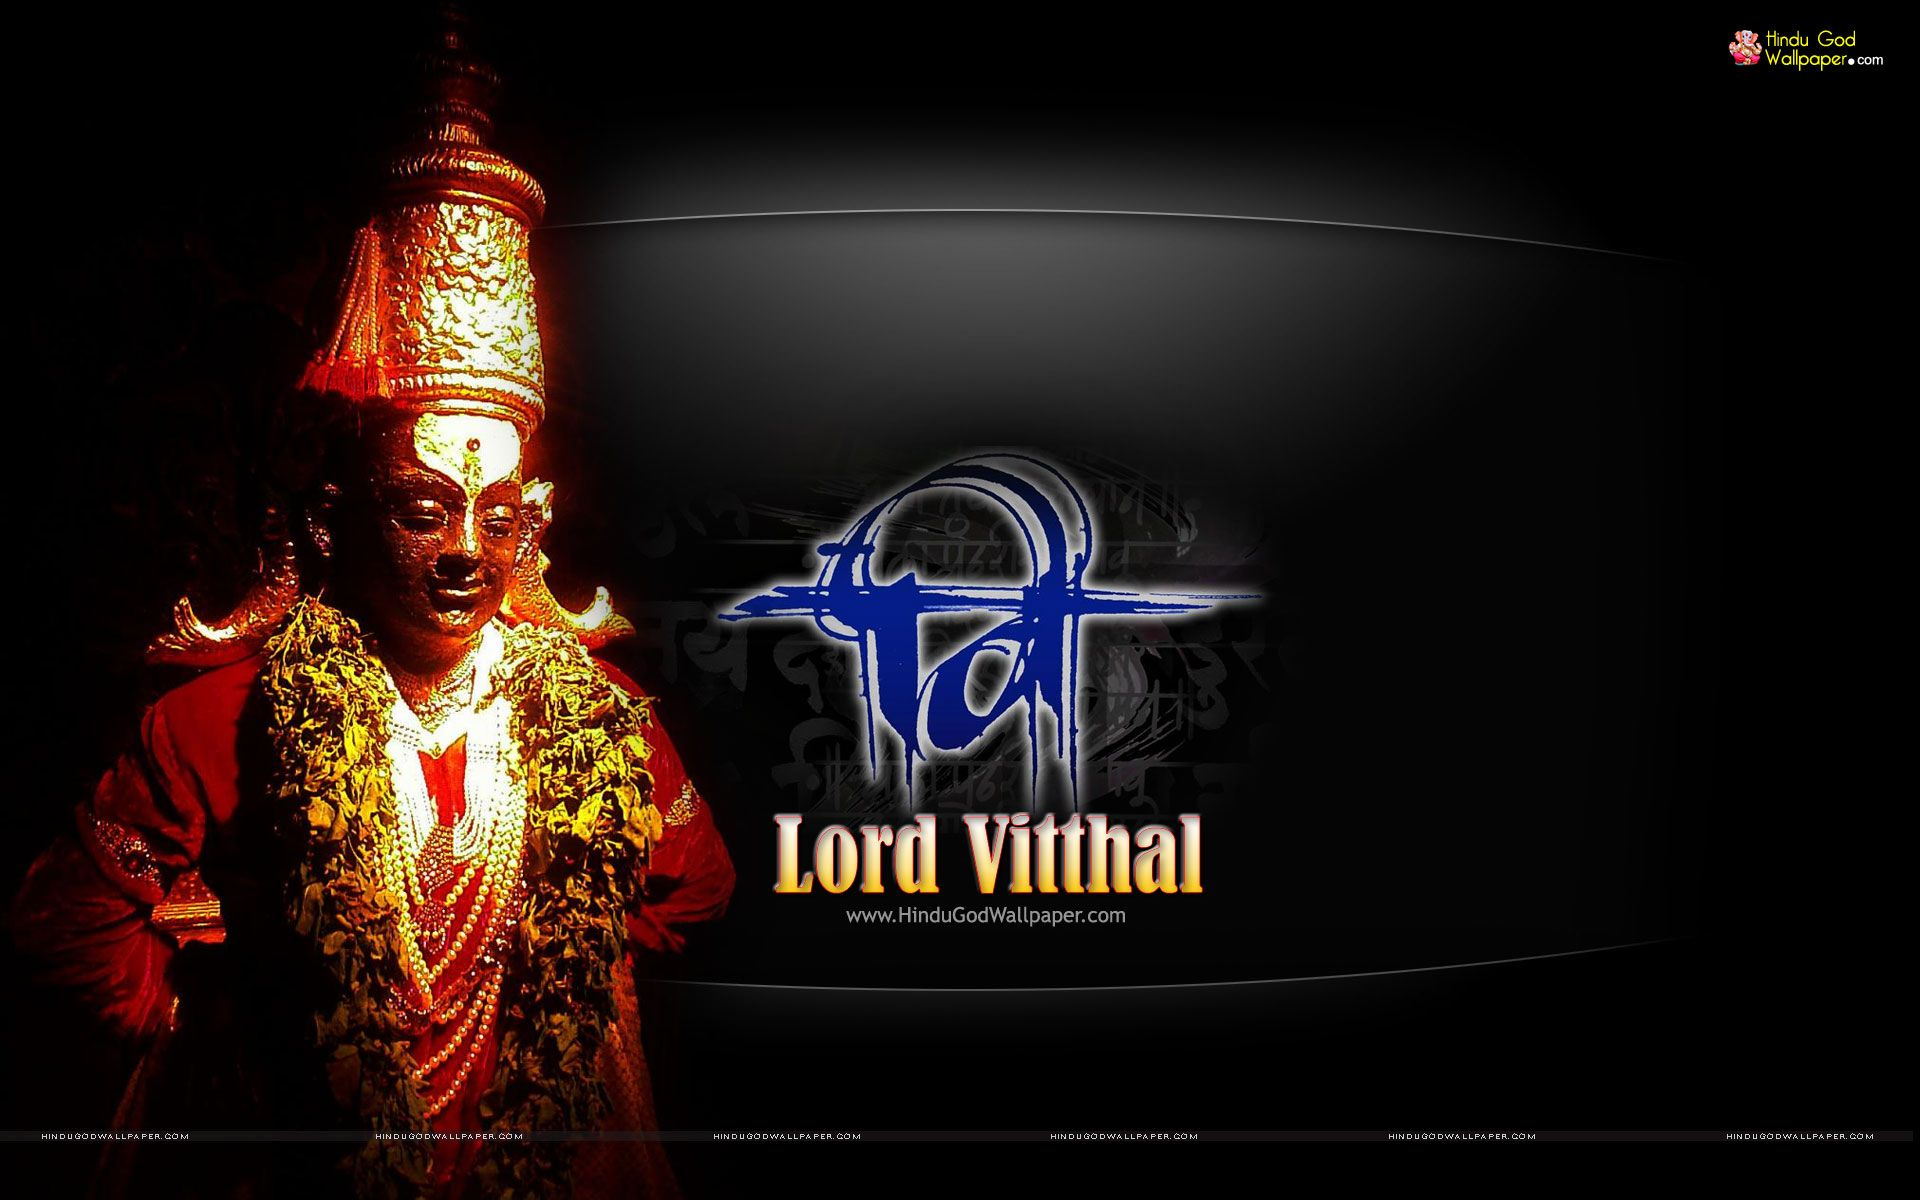 Lord Vitthal Hd Wallpapers Free Download Wallpaper Free Download Hd Wallpapers 1080p Wallpaper